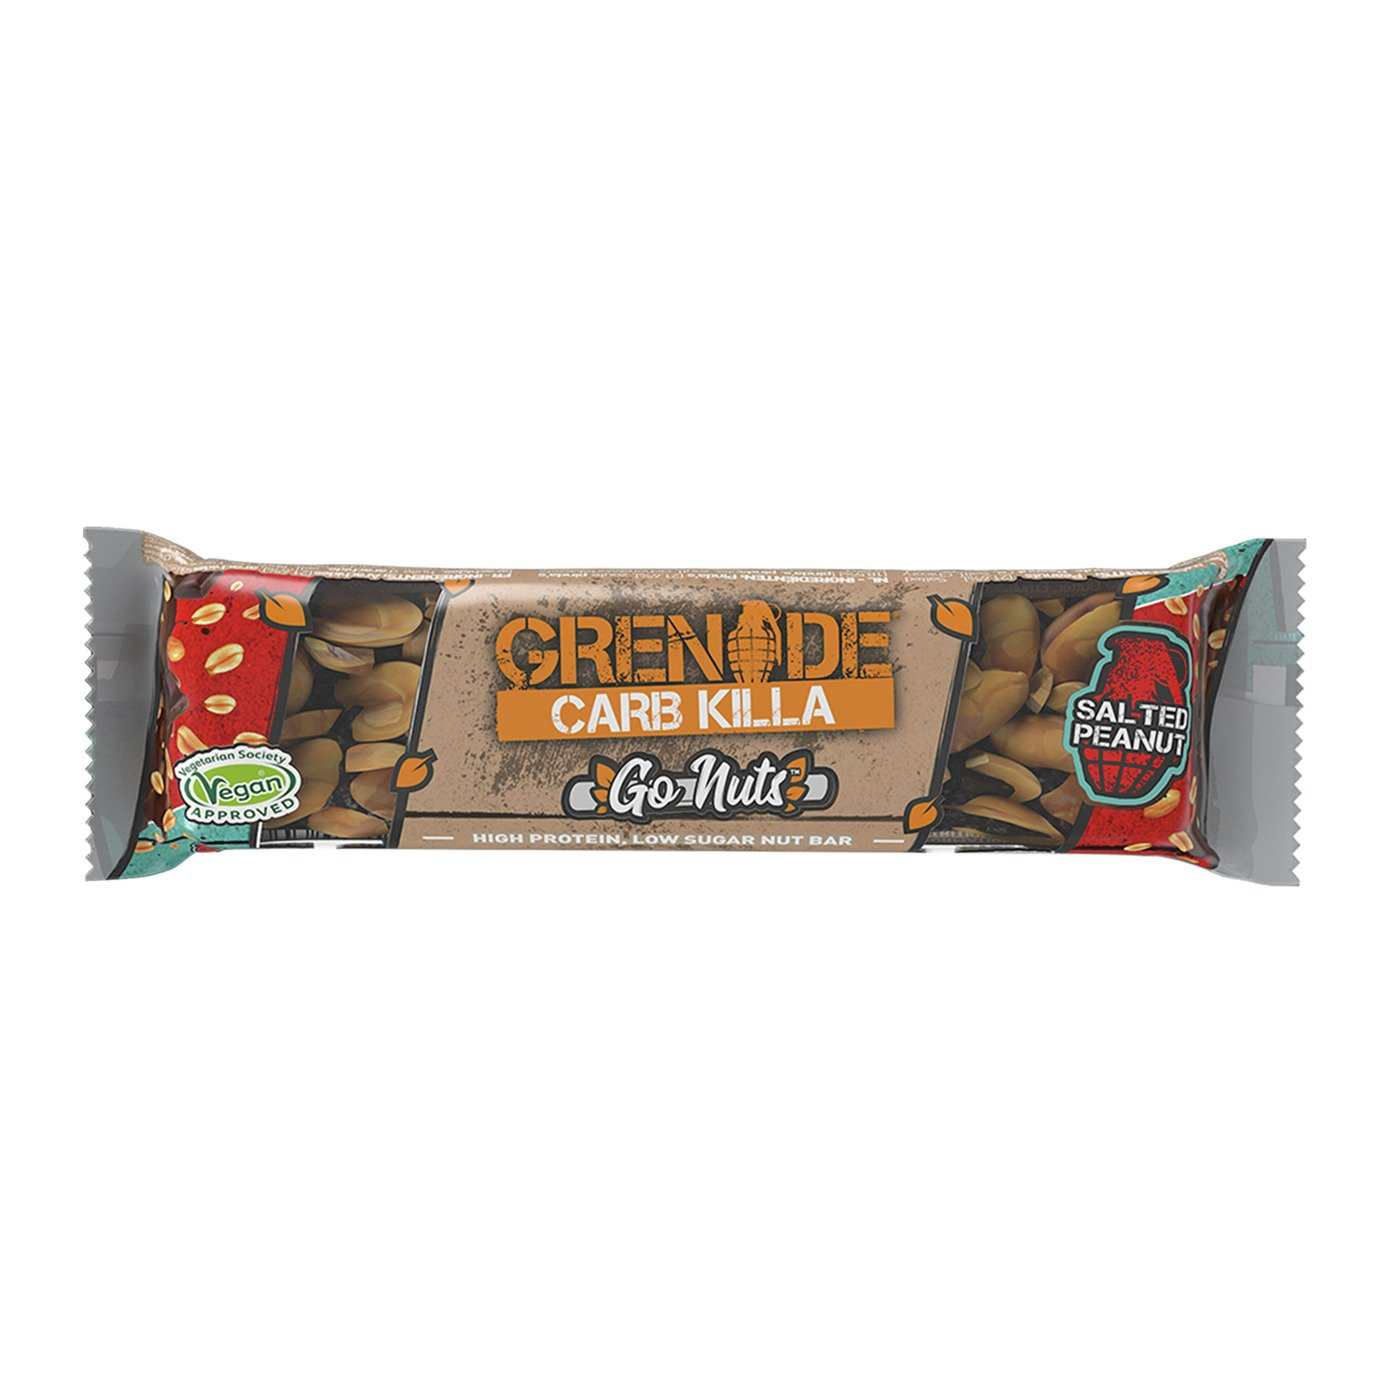 Grenade Carb Killa Go Nuts Vegan Salted Peanut x 15 review